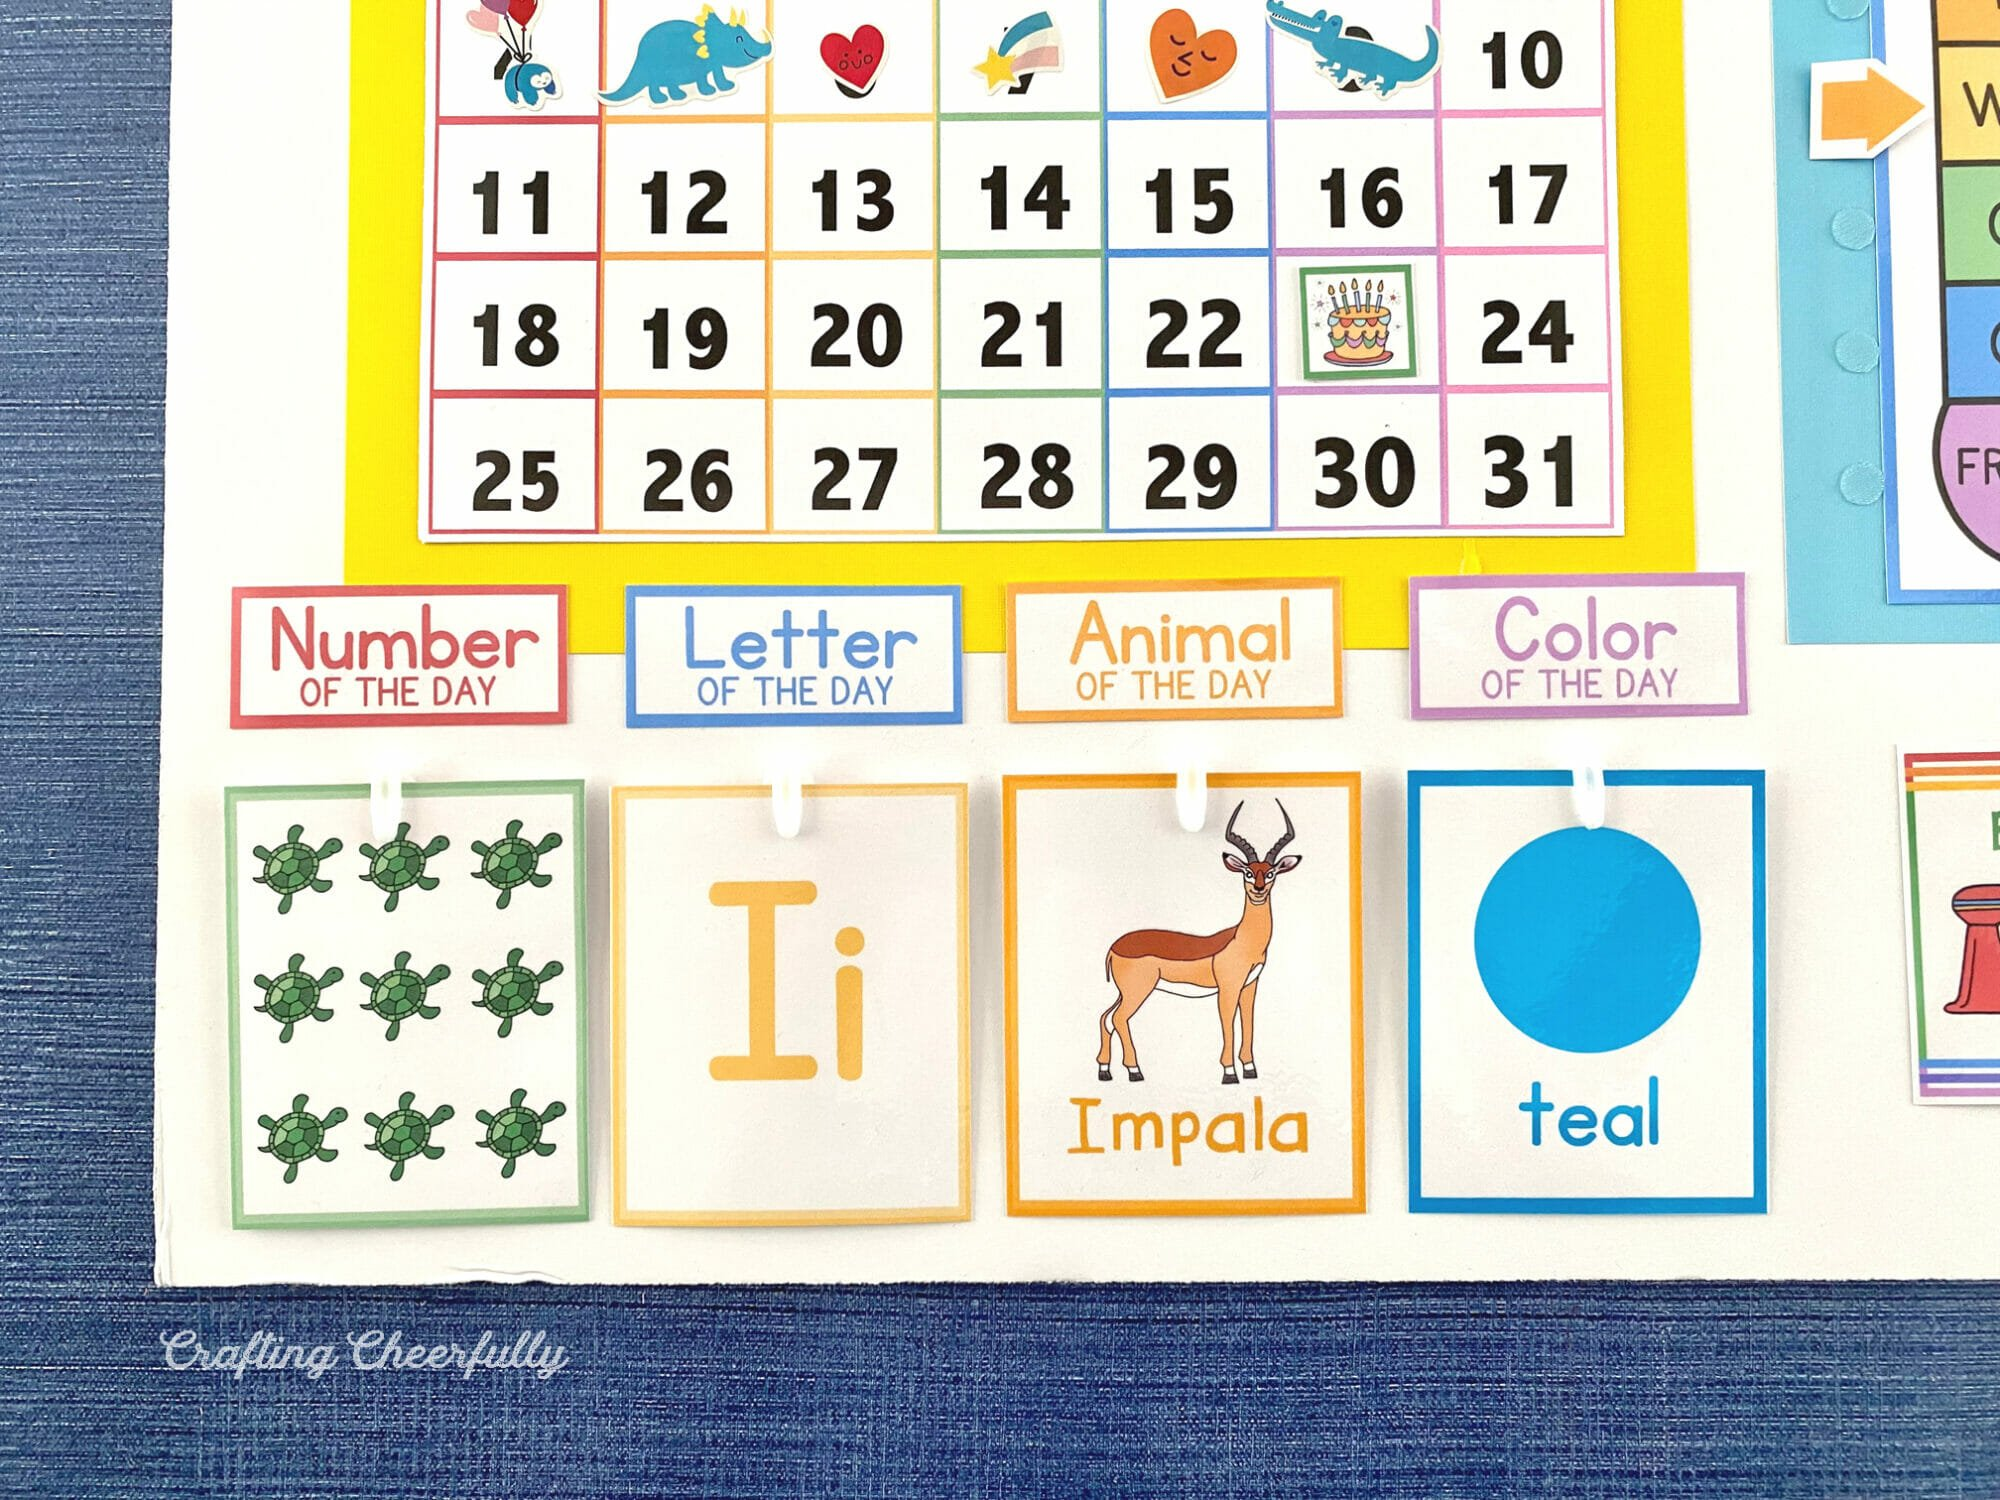 Preschool learning cards on the calendar including animal, number, color and letter.